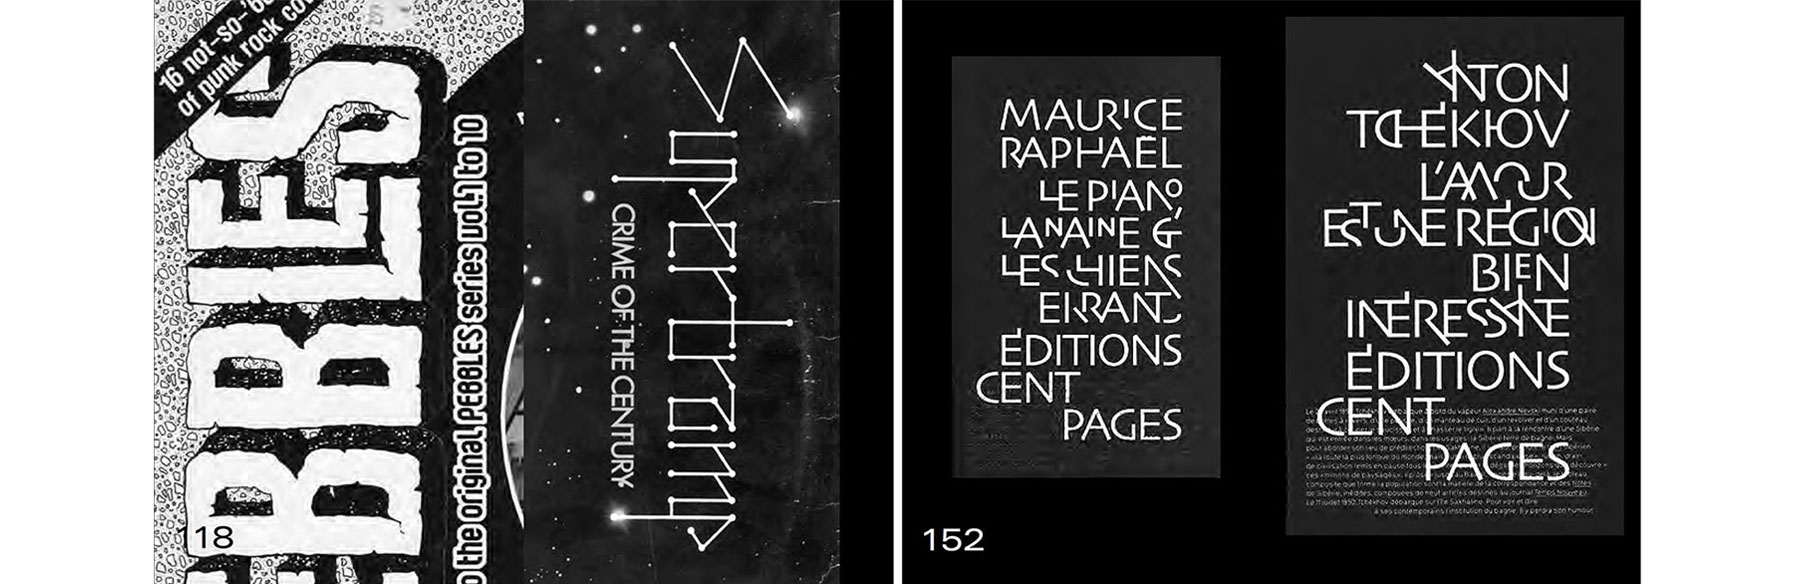 Ligatures-Daniel-Hattenschwiller-Thomas-Petit-cover-index-grafik-memoire-ecal-capture05